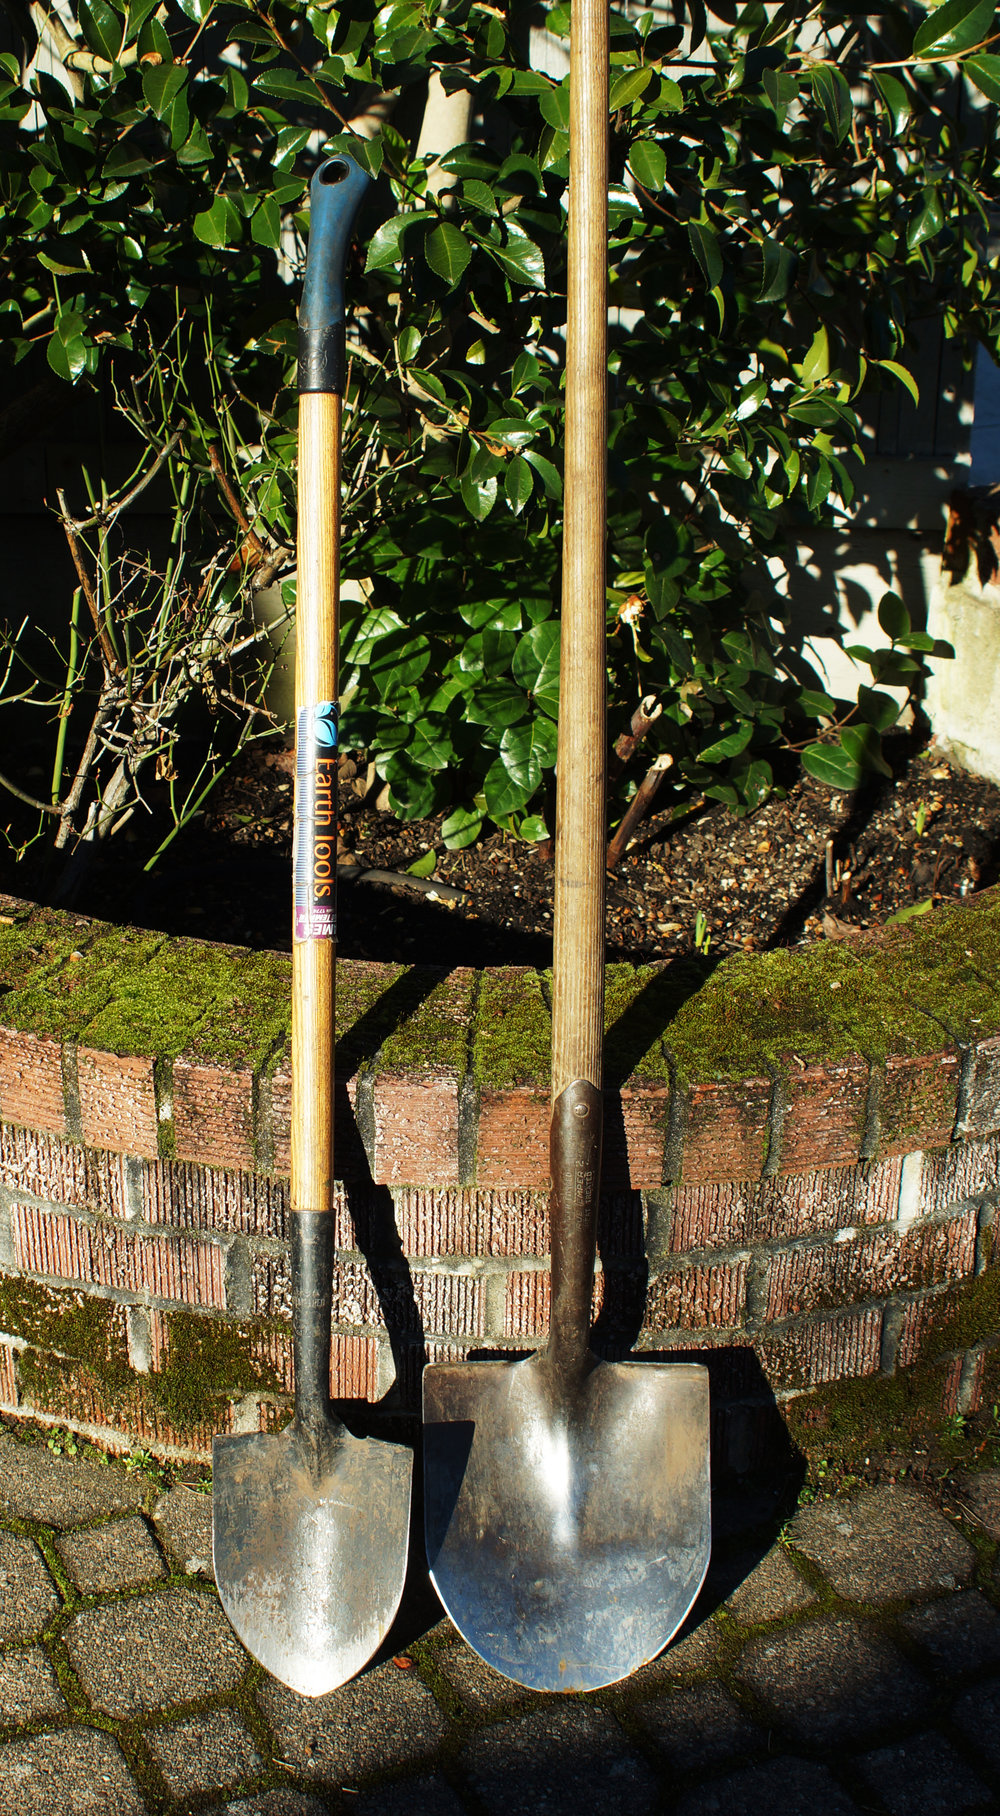 Floral shovel (left) has a smaller blade than a standard shovel, but a similar long handle.